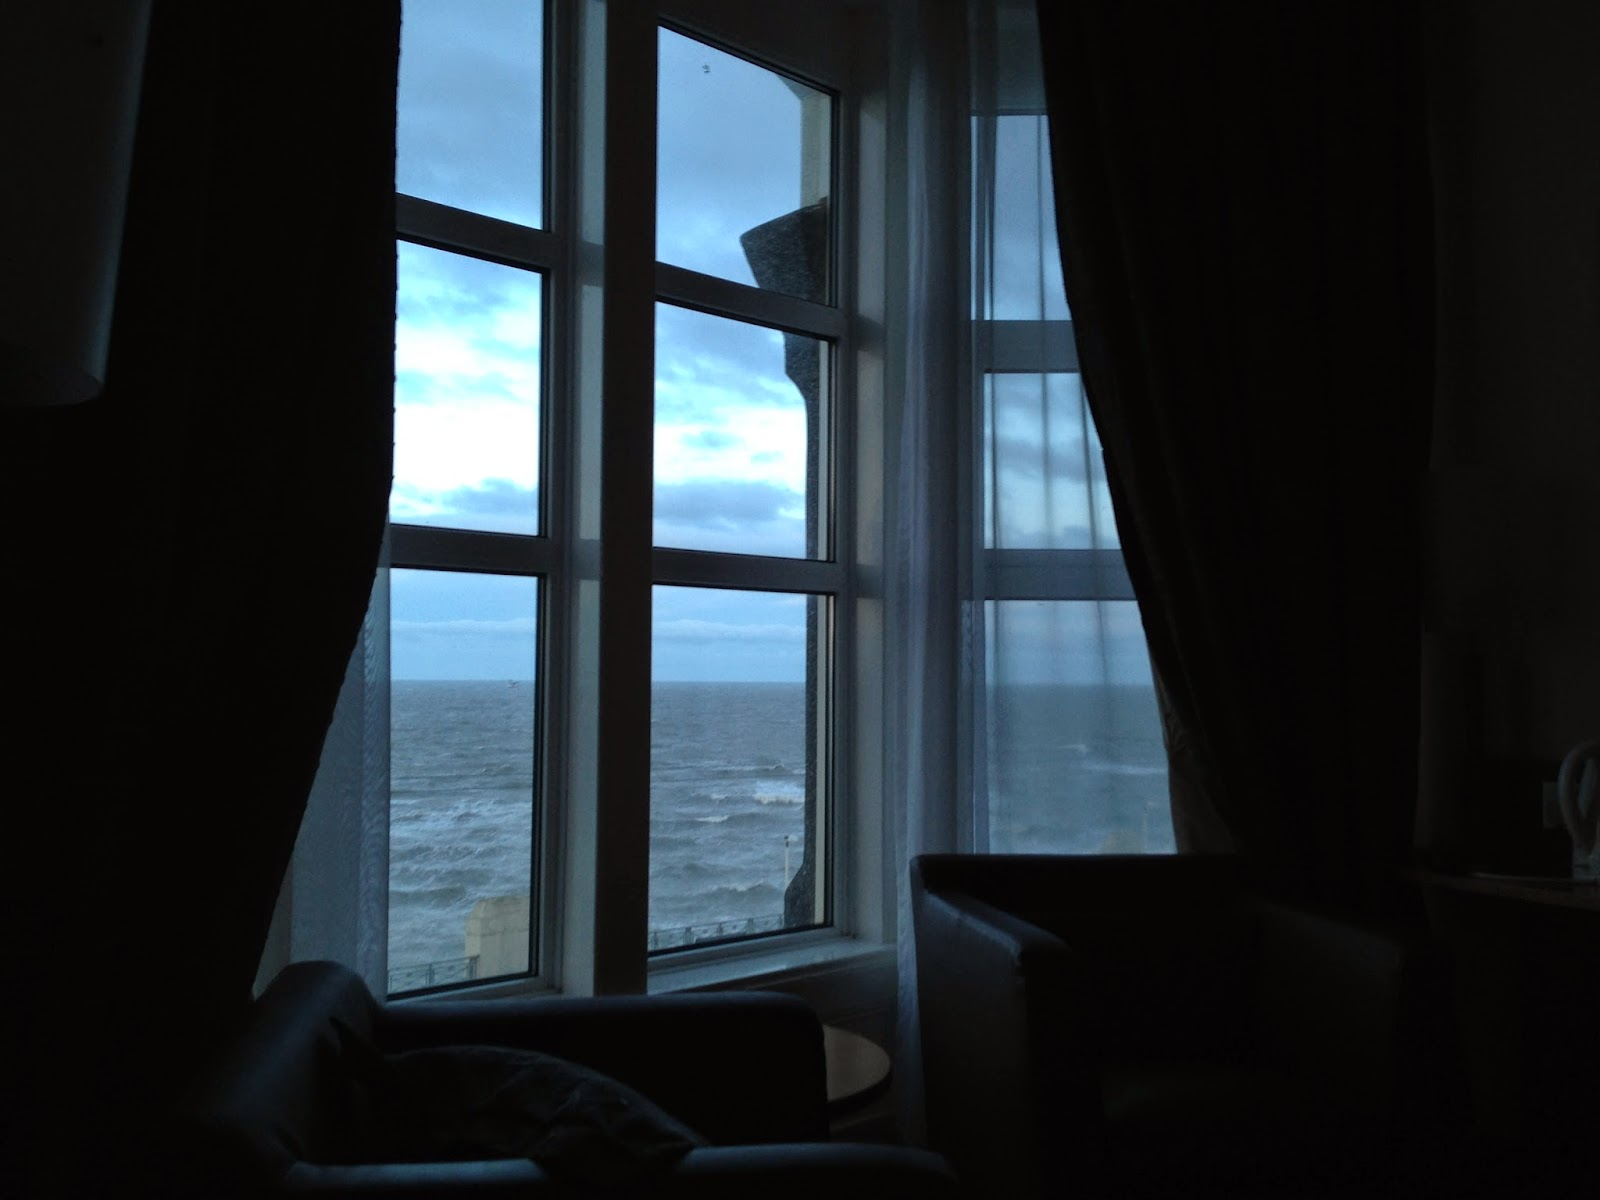 Blackpool hotel room, atlantic rollers, Executive double, Strand Hotel